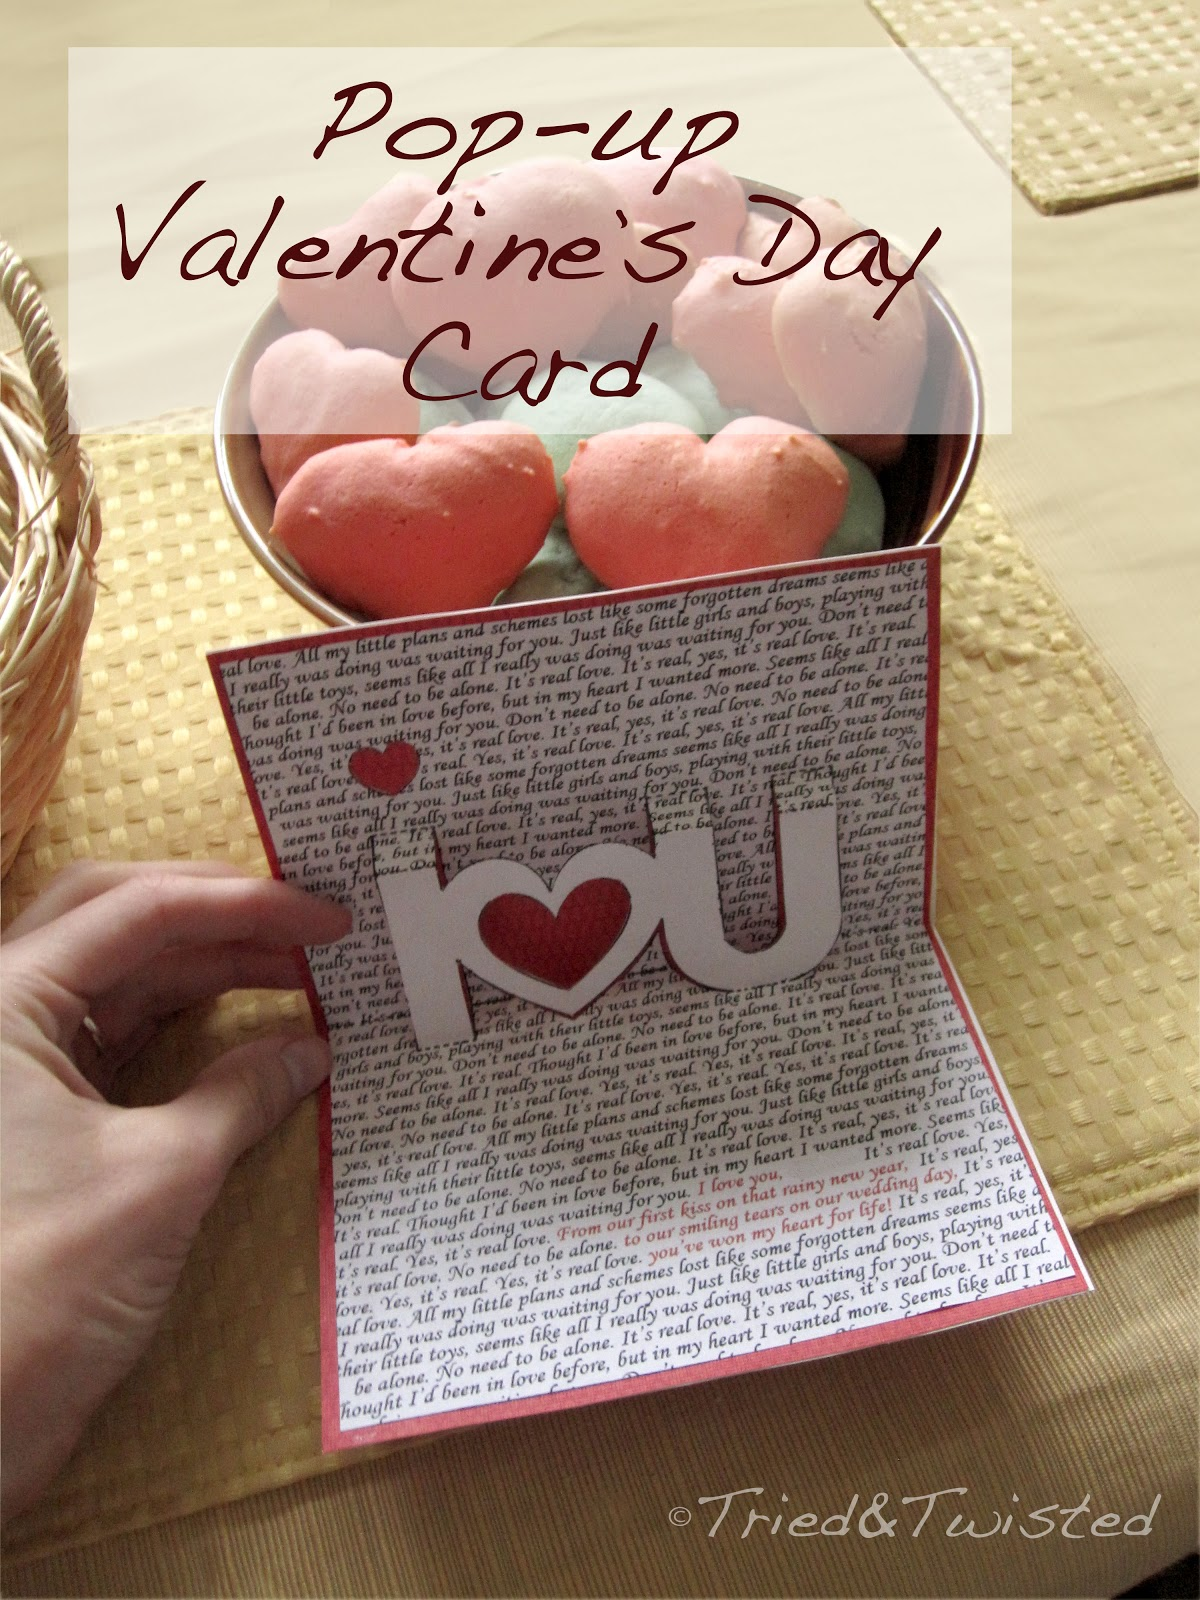 Diy Pop Up Valentines Day Card Via Tried Twisted